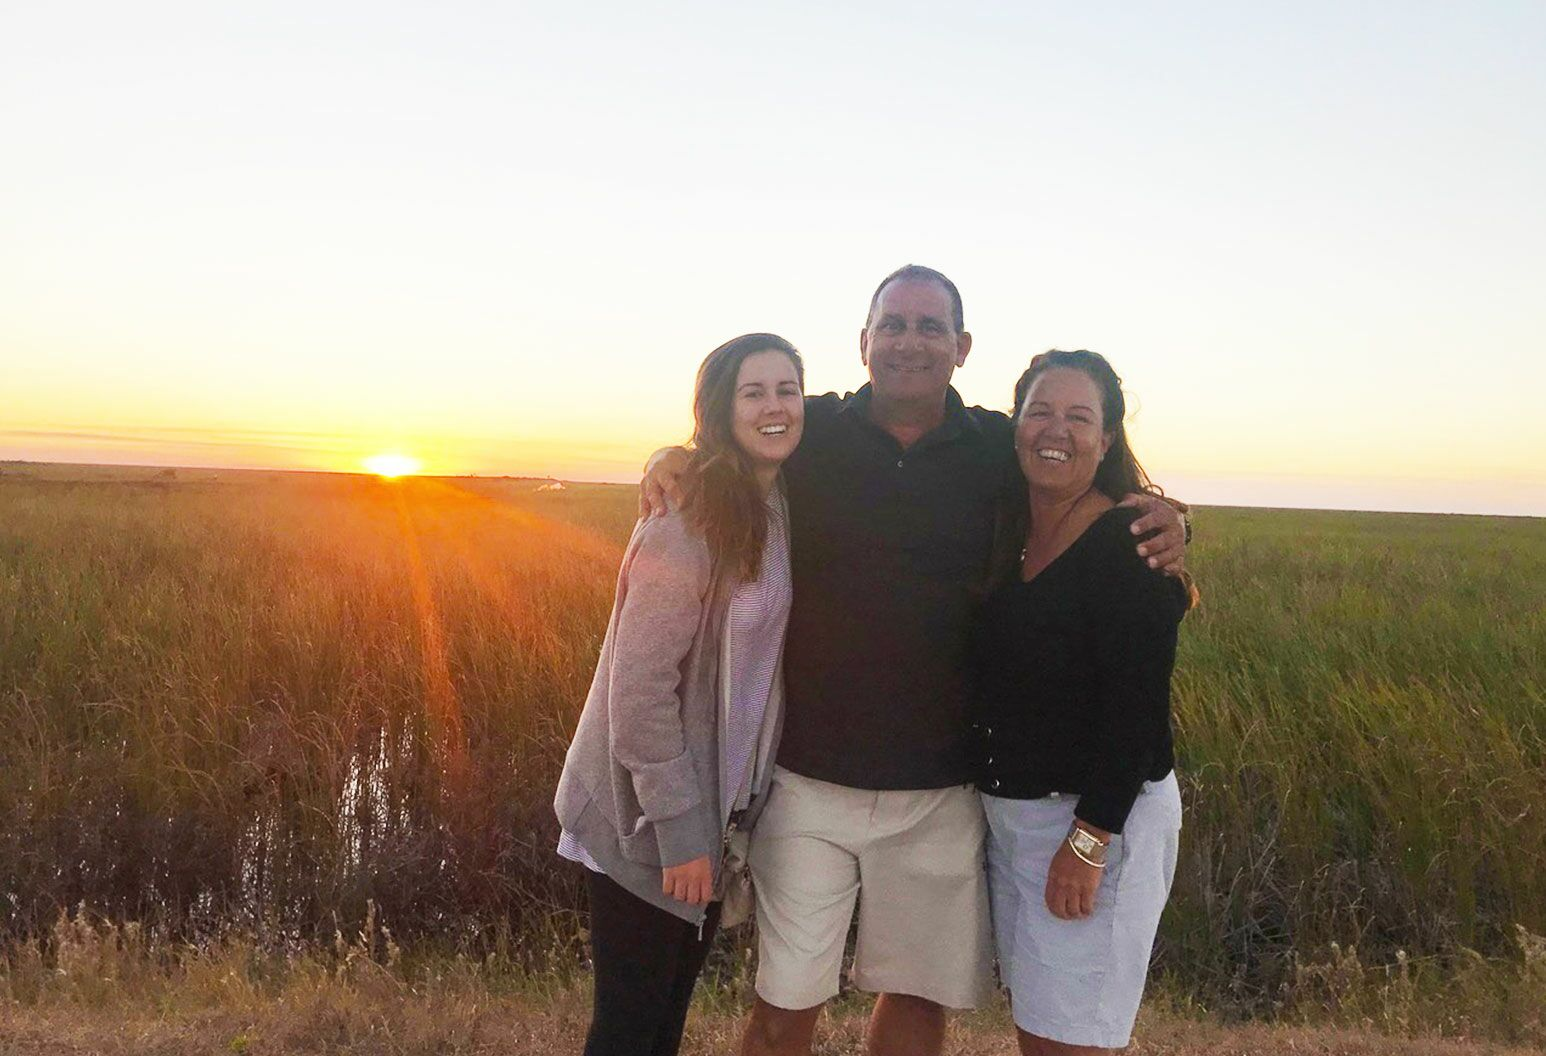 A man smiles with his arms around two women next to him as they stand against the sunset.